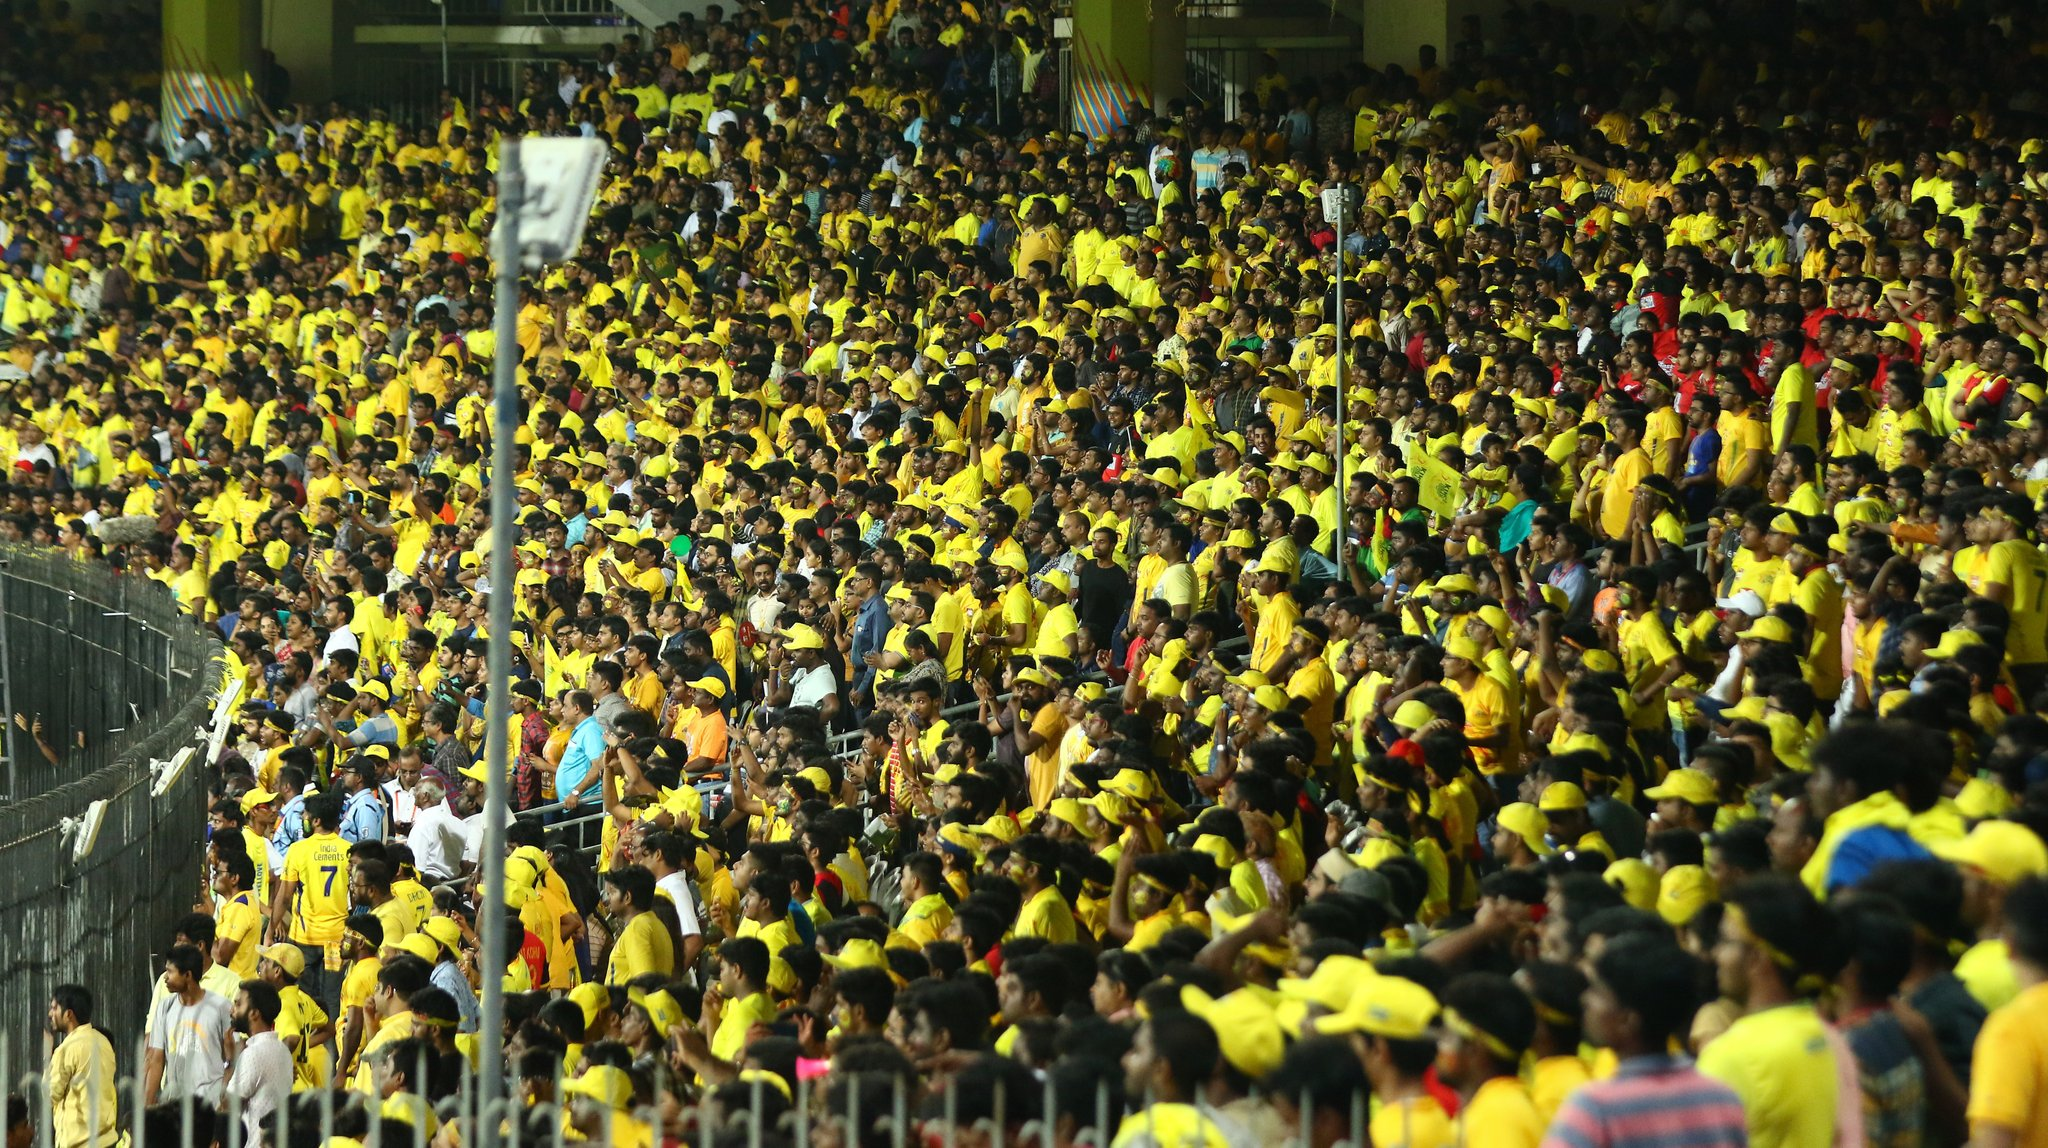 That special whistle: the phenomenon called CSK